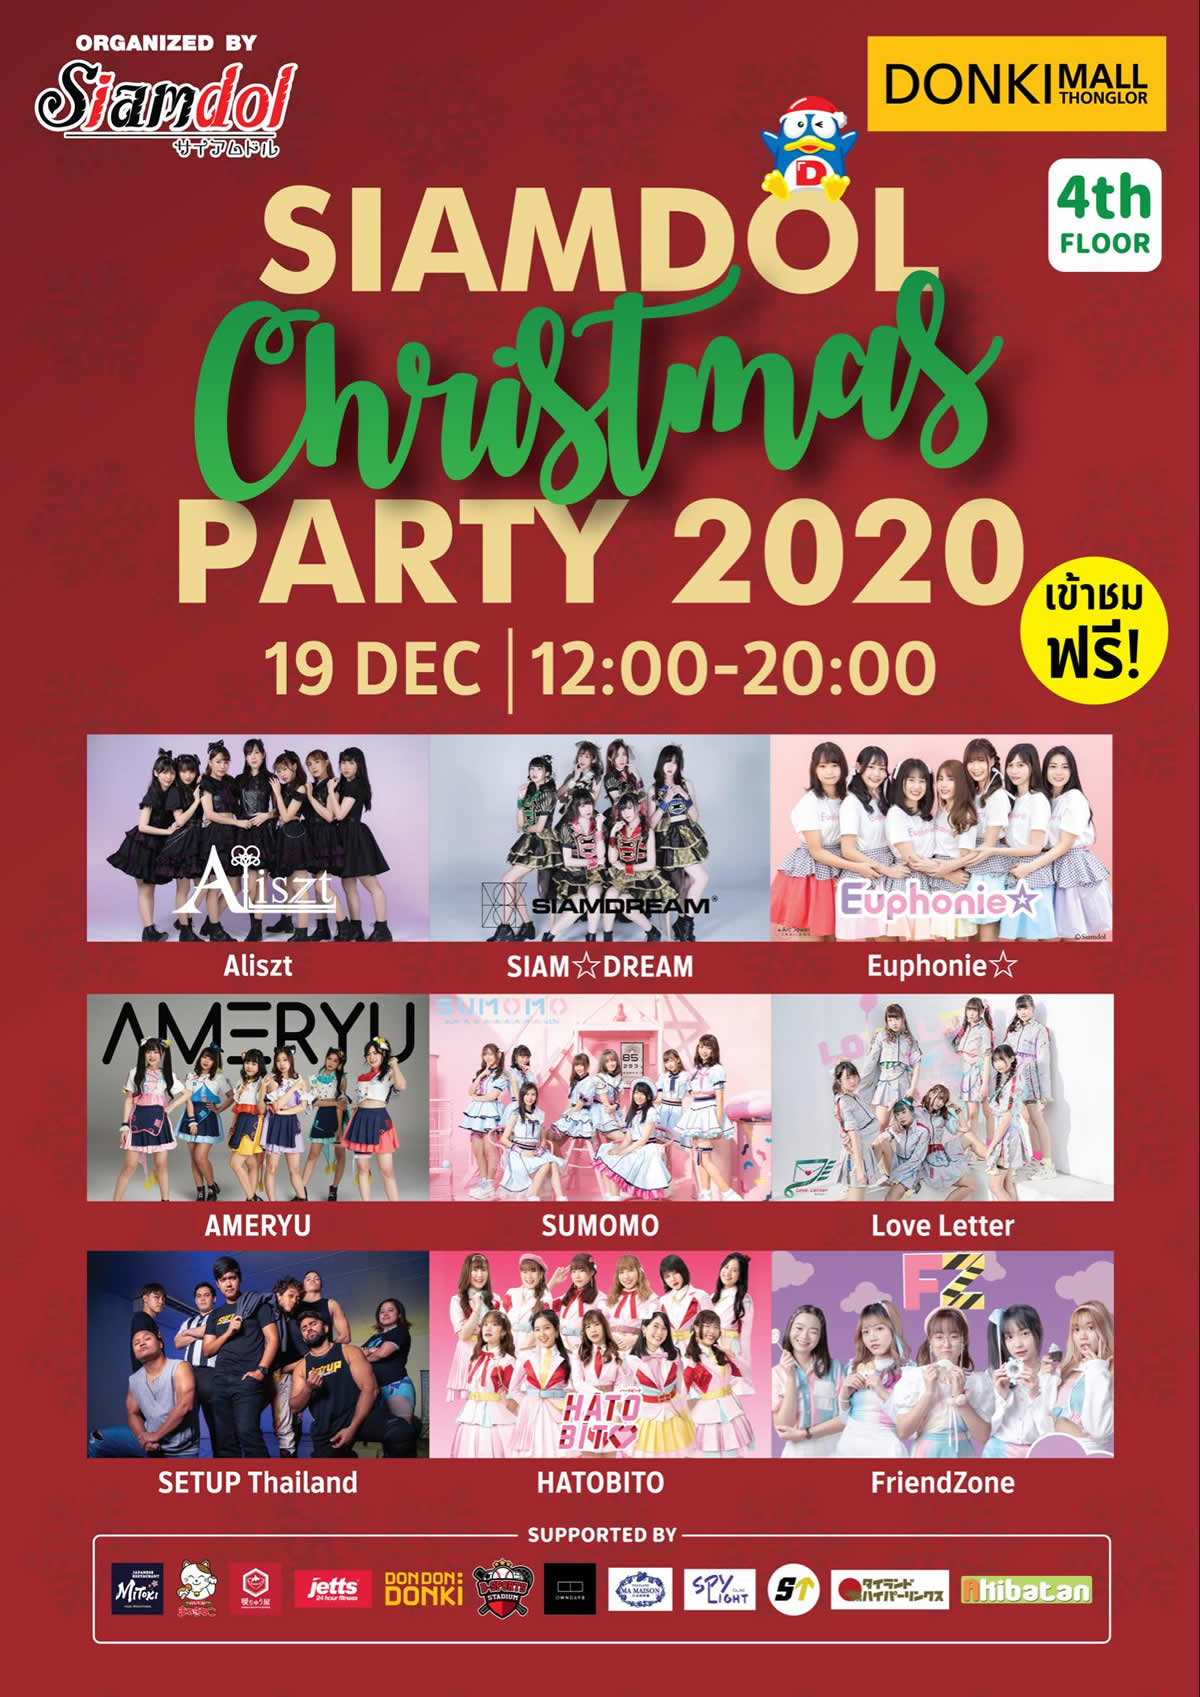 Siamdol Christmas Party 2020